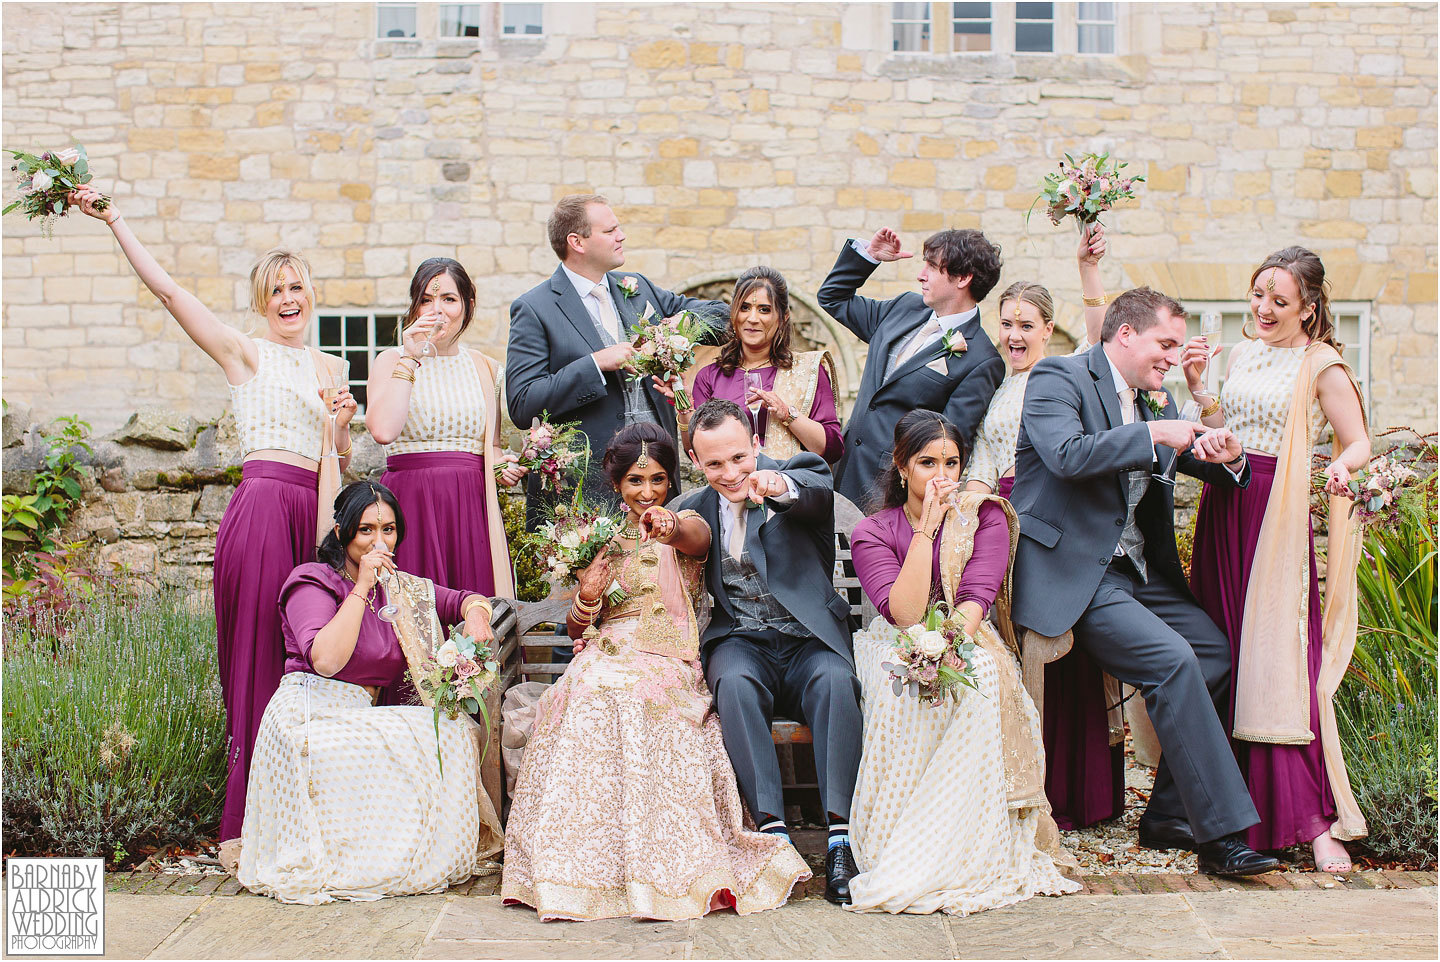 A funky groupshot at an indian wedding at Priory Cottages farm and barn in Yorkshire